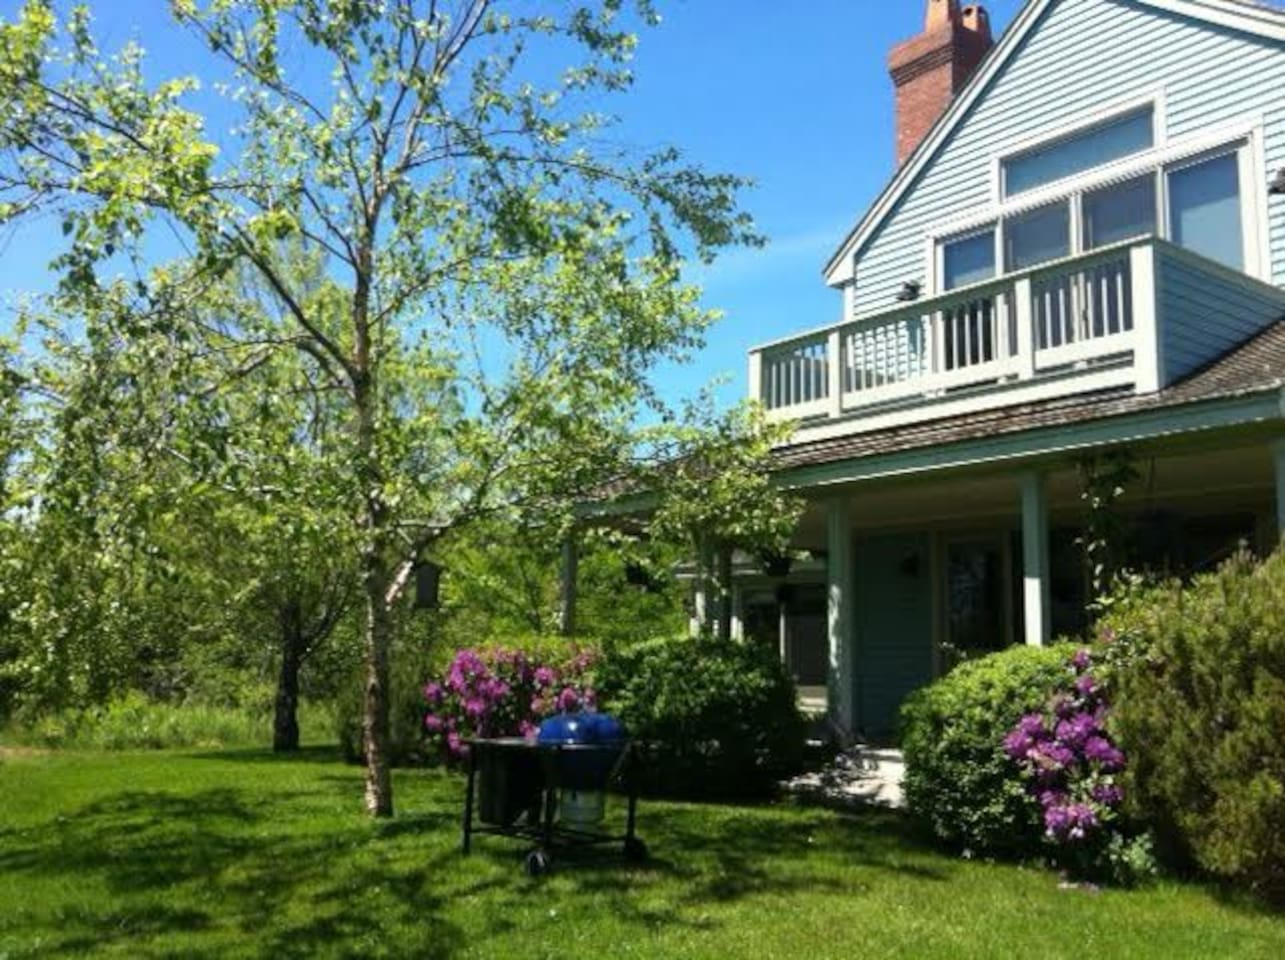 The Blue House in the summer